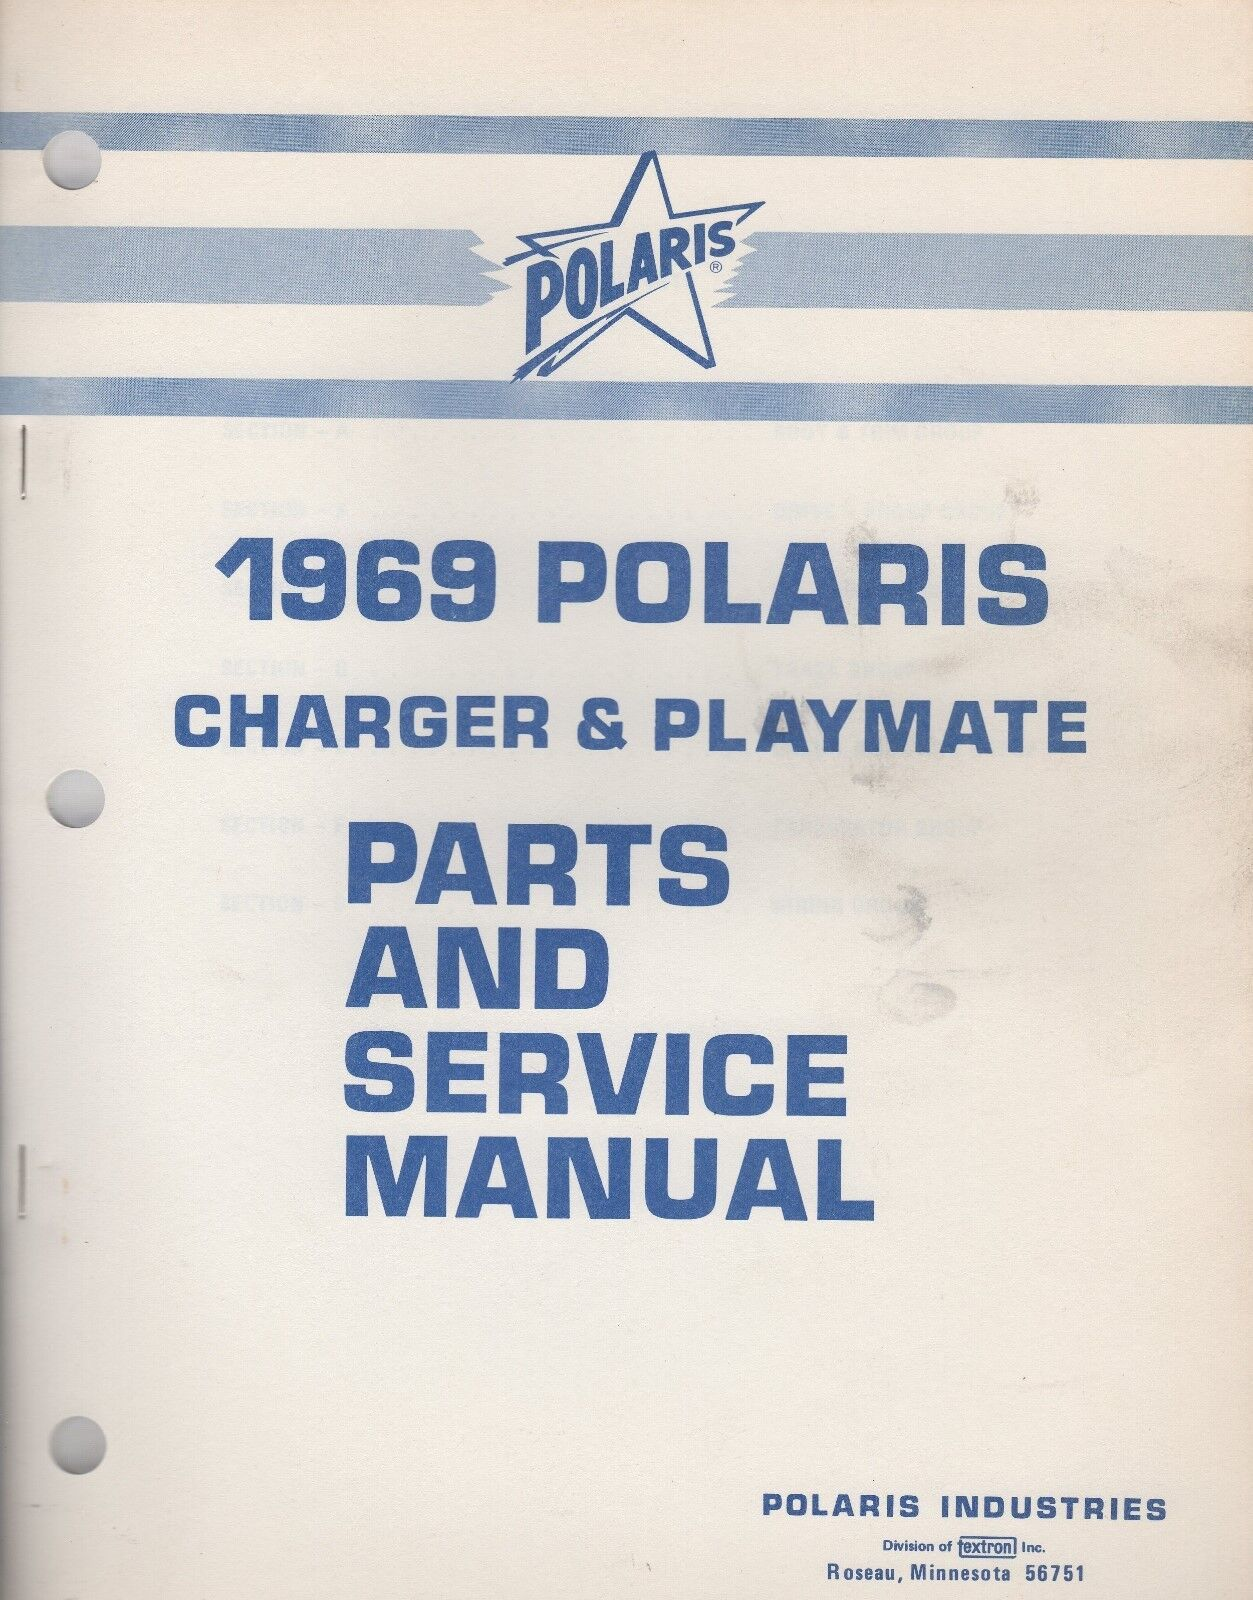 1969 POLARIS SNOWMOBILE CHARGER & PLAYMATE PARTS and SERVICE MANUAL (885)